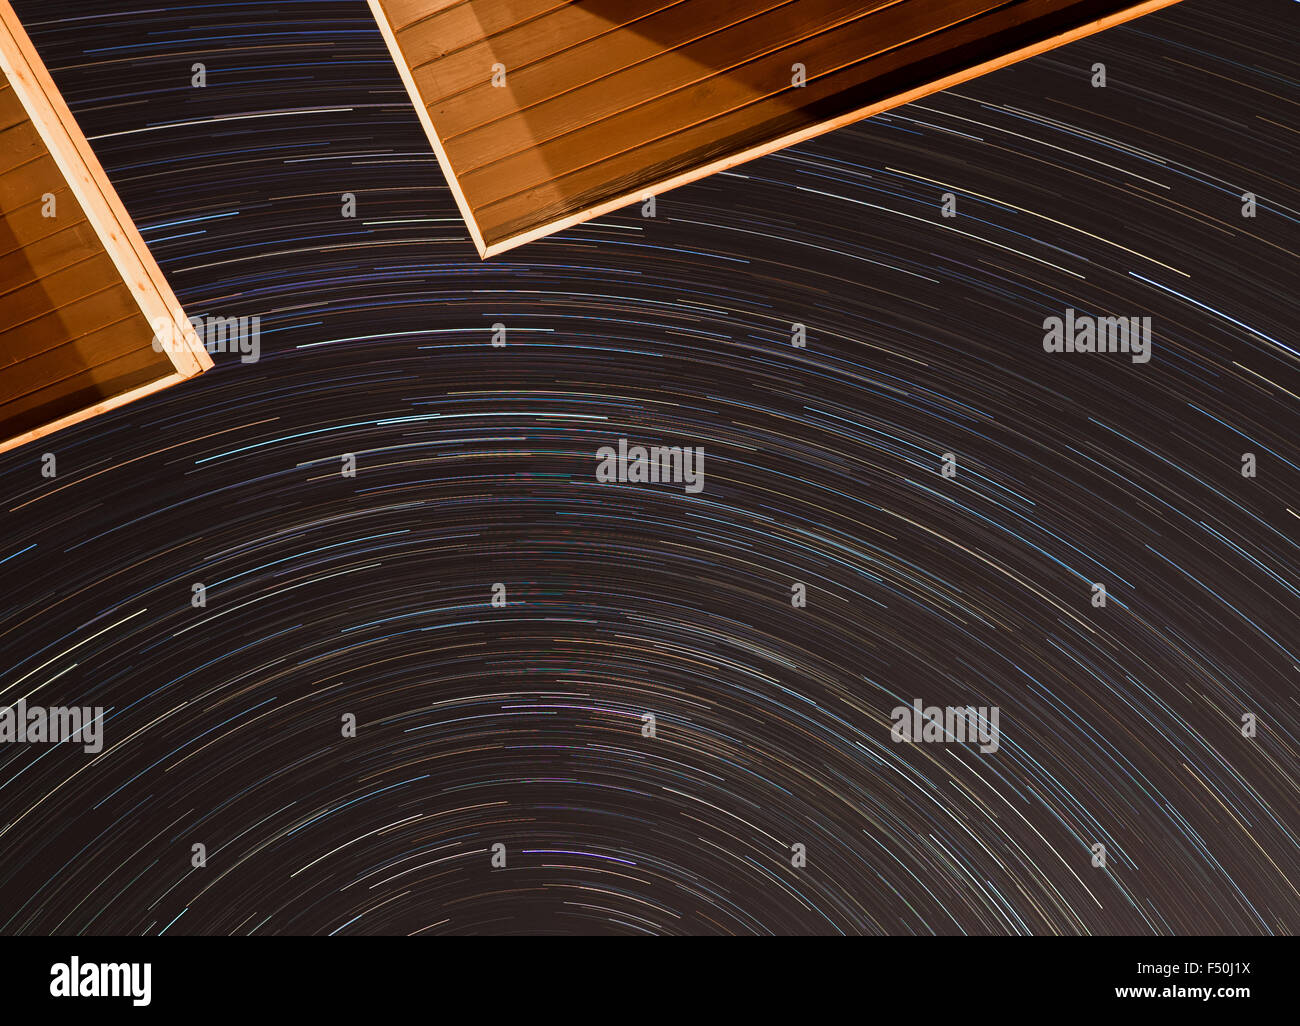 Star spin trails over the houses in Austin, Texas - Stock Image